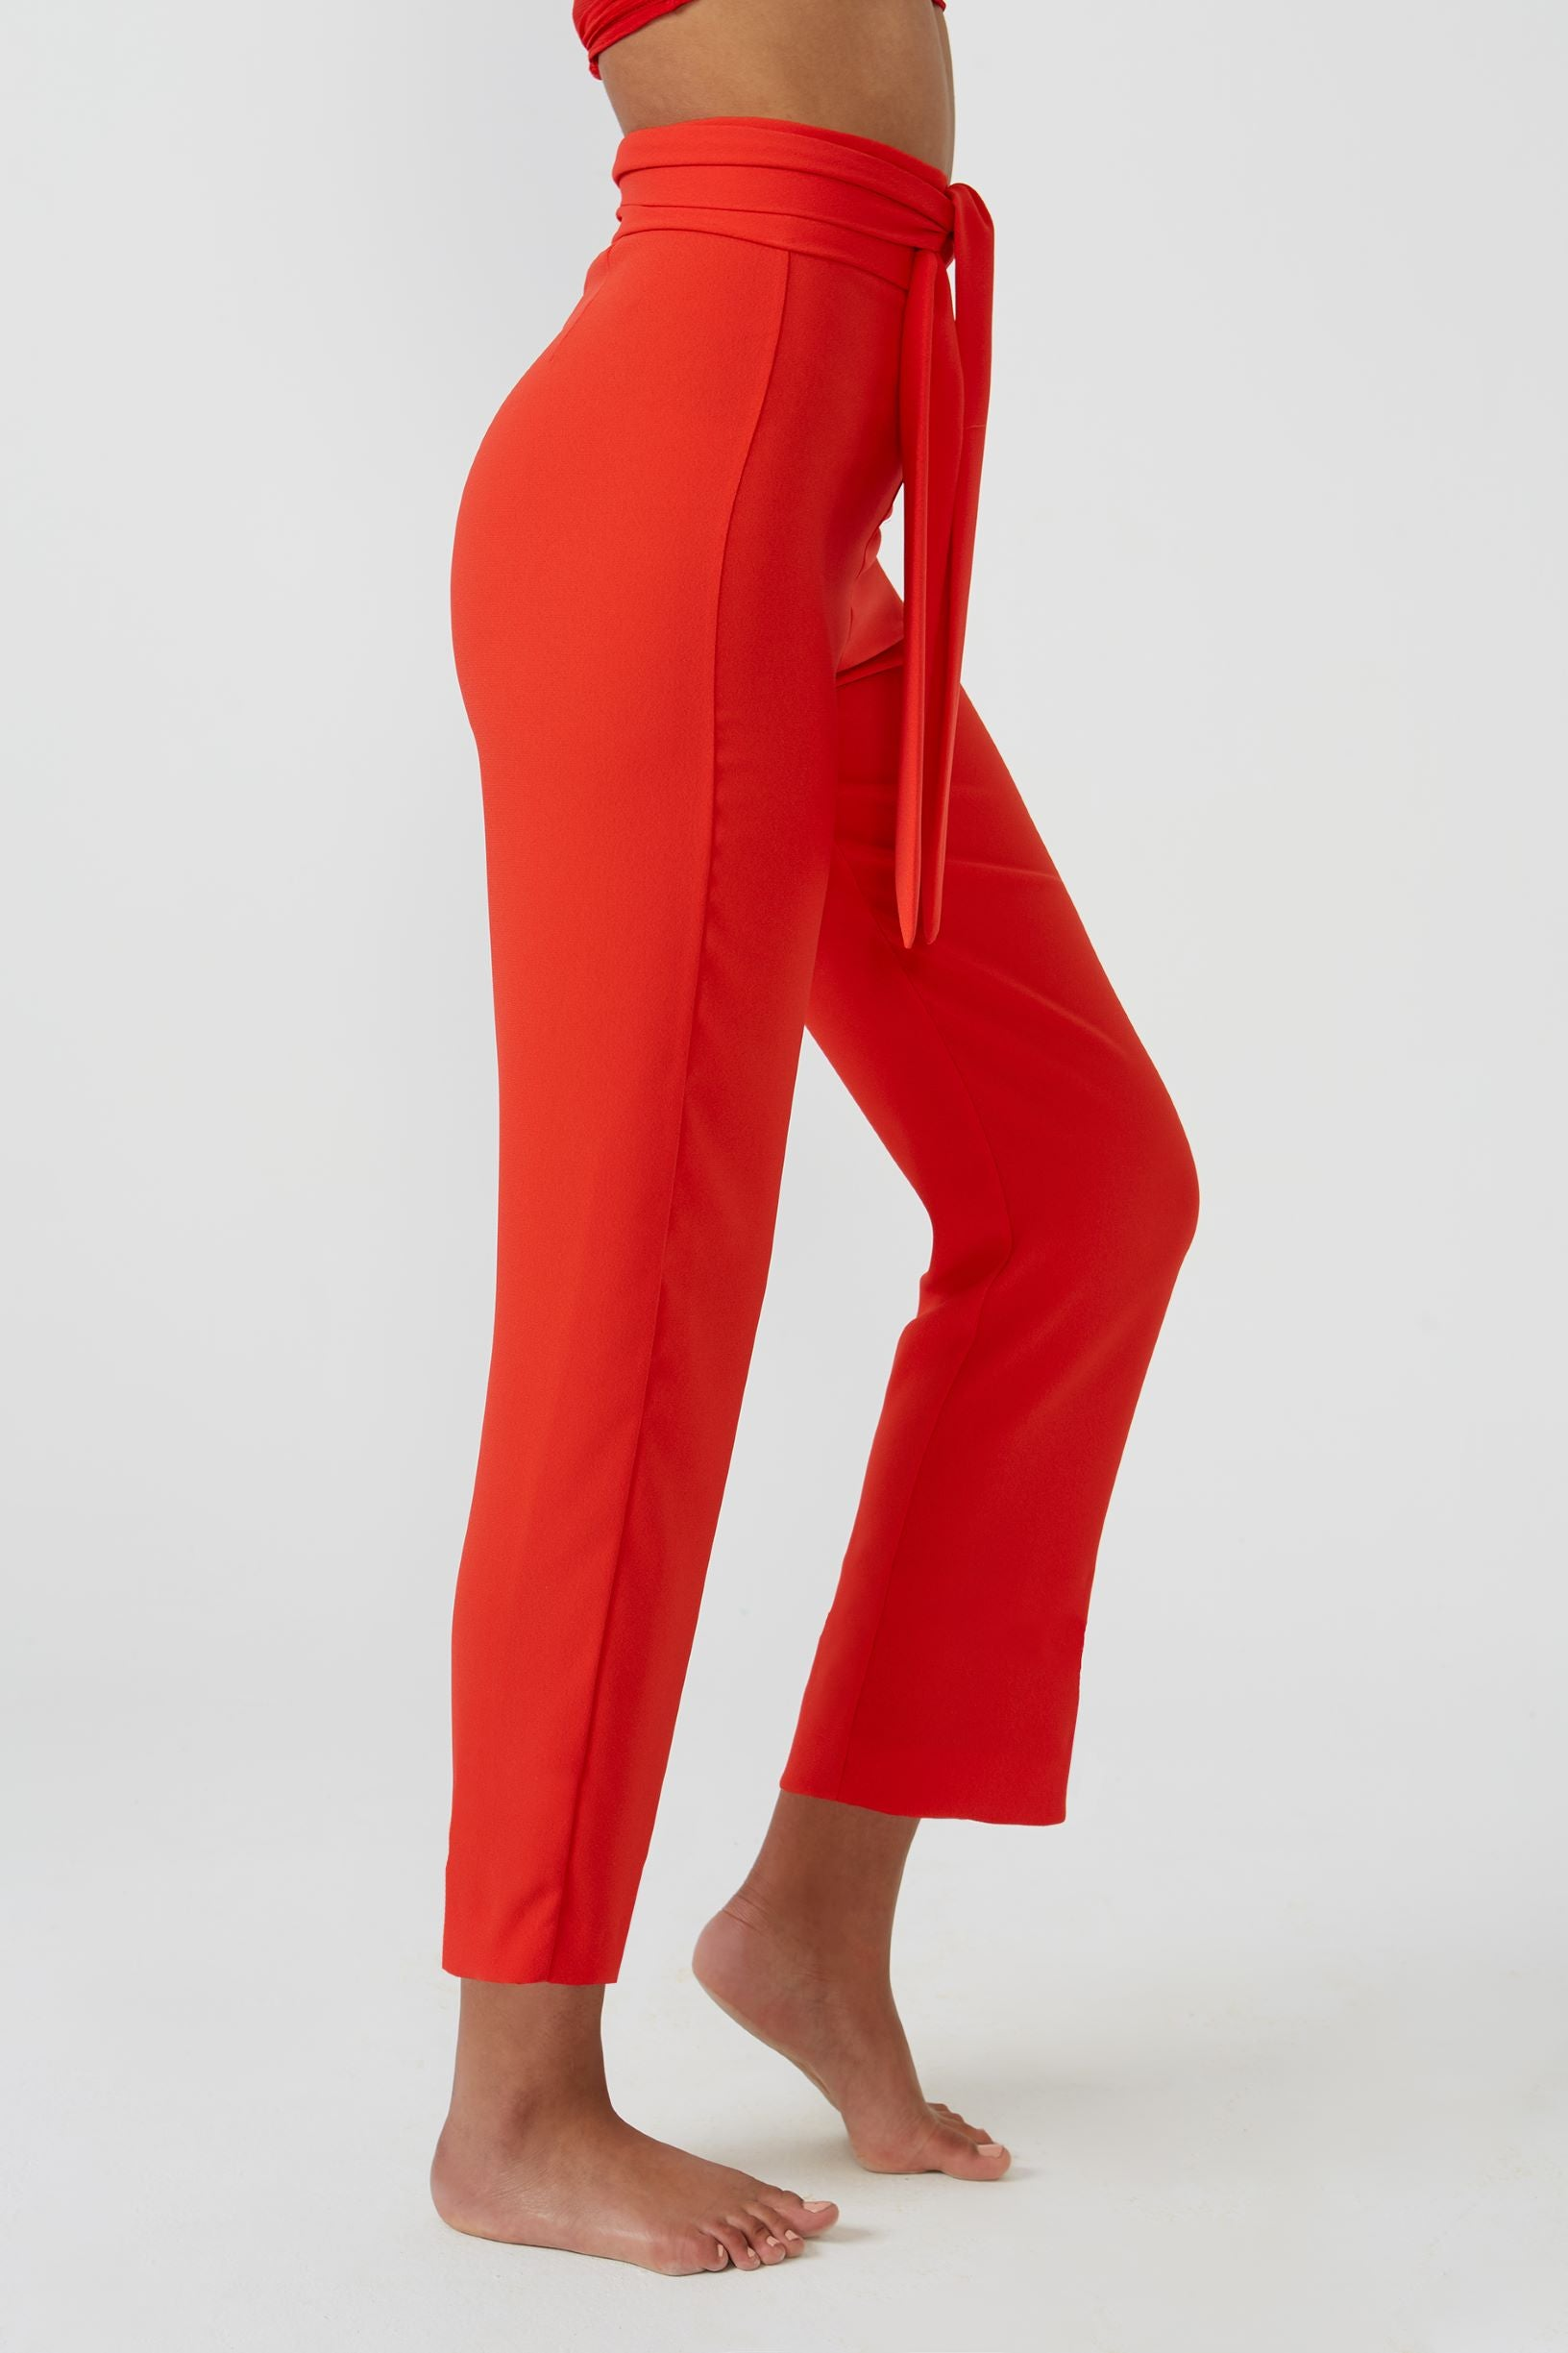 Oasis Red Trousers - Etxart & Panno USA